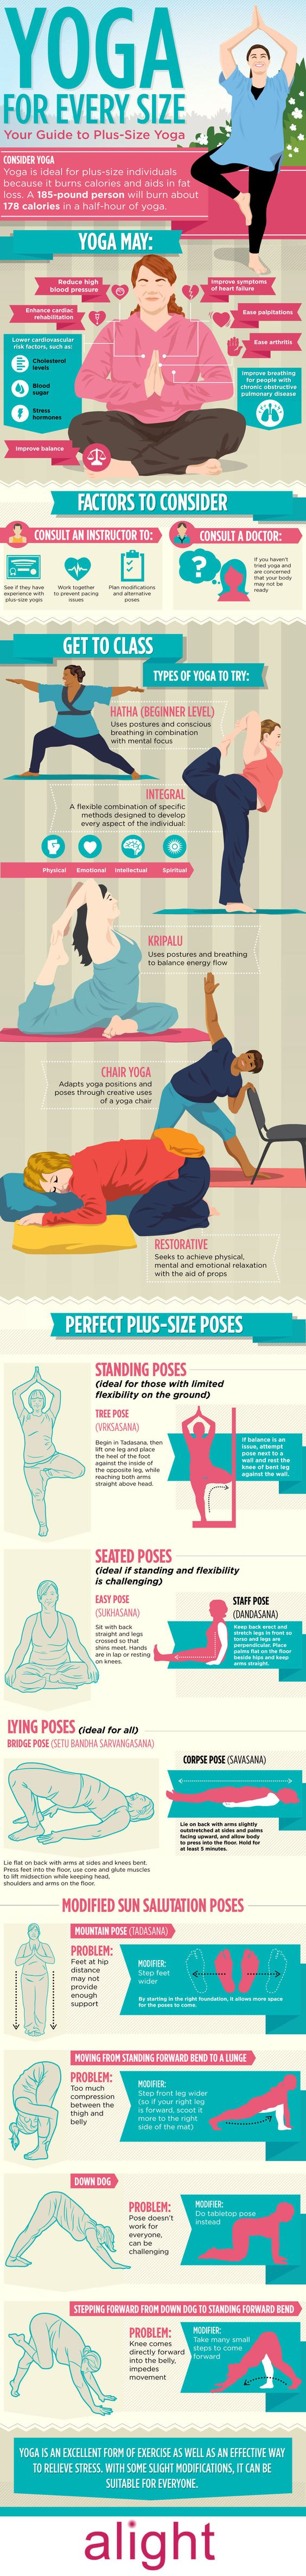 Yoga - Ways to Engage More Muscles